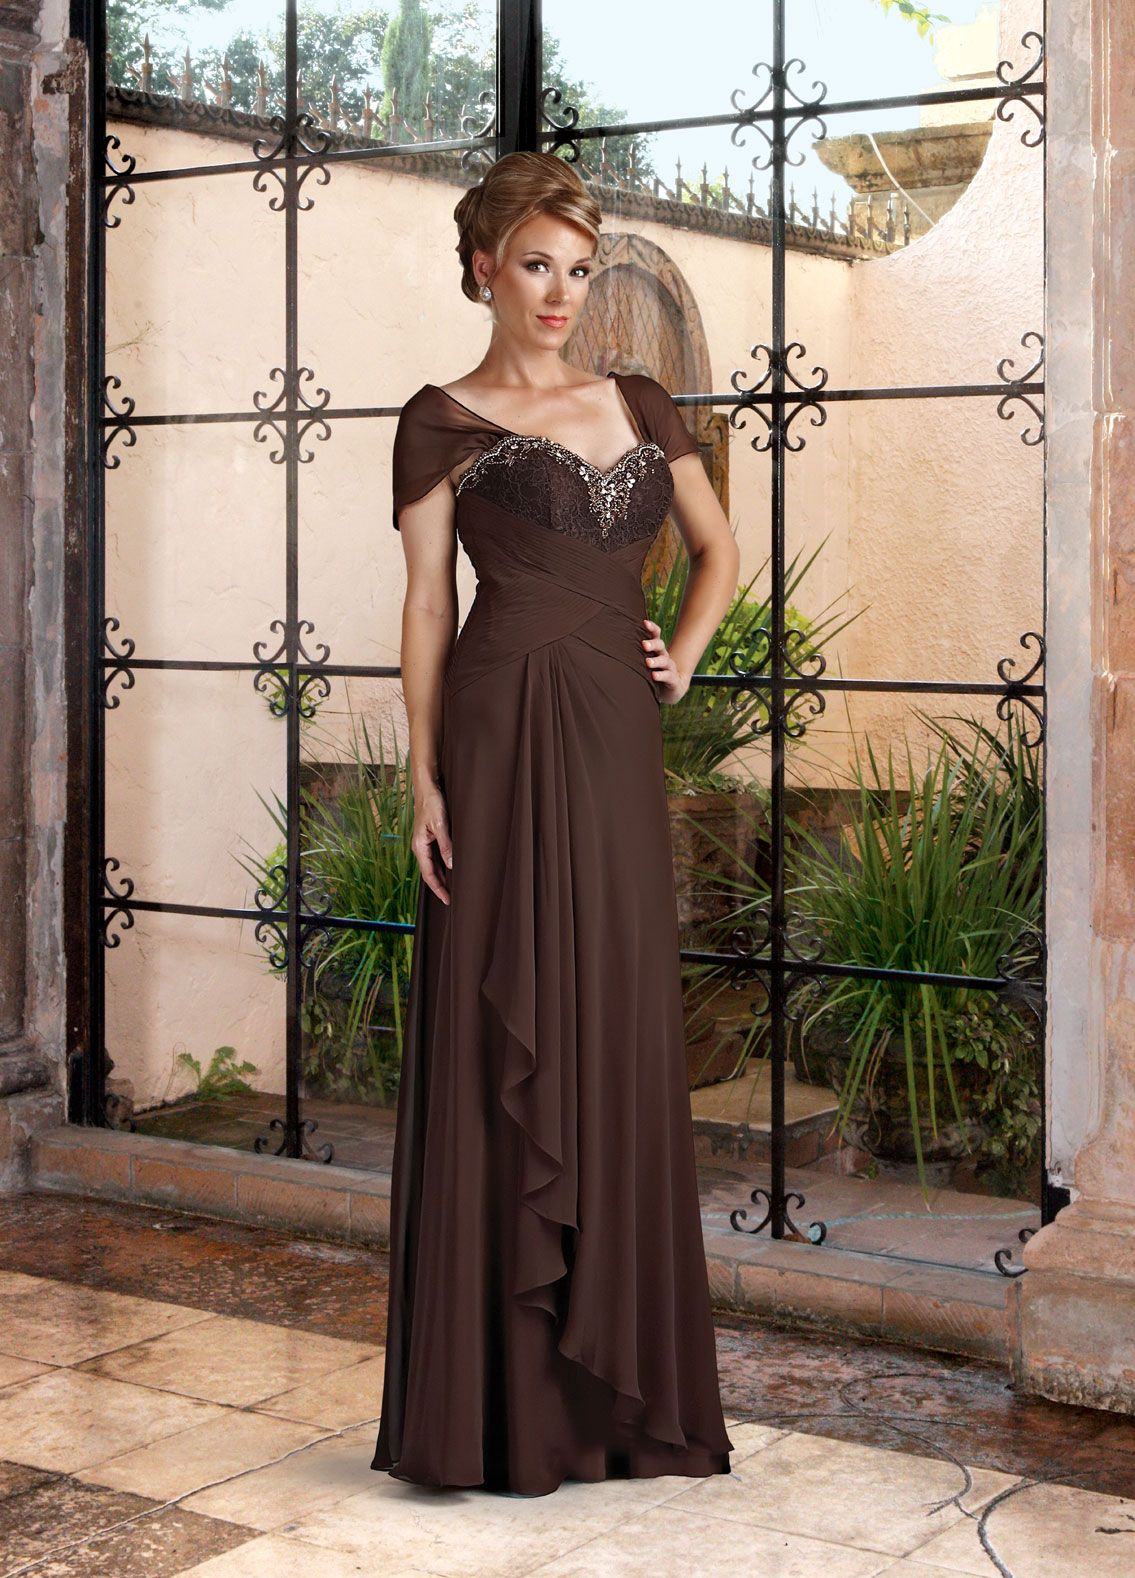 La Perle Mother of the Bride Dresses